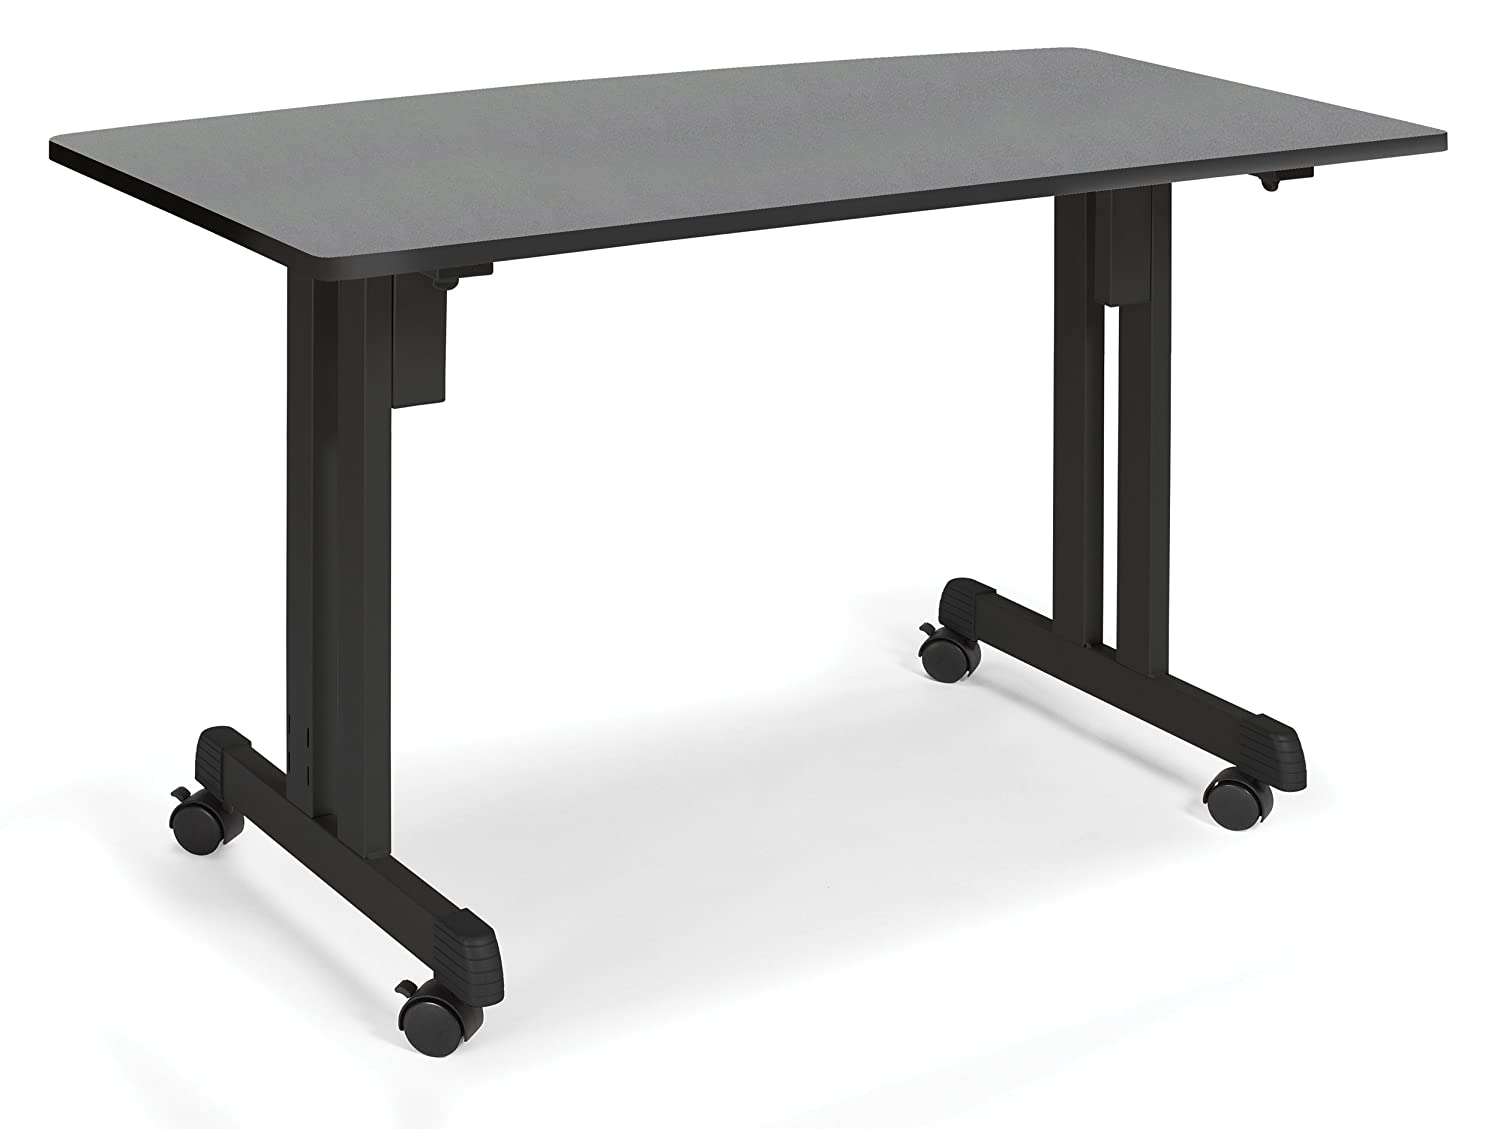 Amazon.com: OFM 55111 GRPH Multiuse Table Graphite With Black Frame, 24 By  48 Inch: Kitchen U0026 Dining